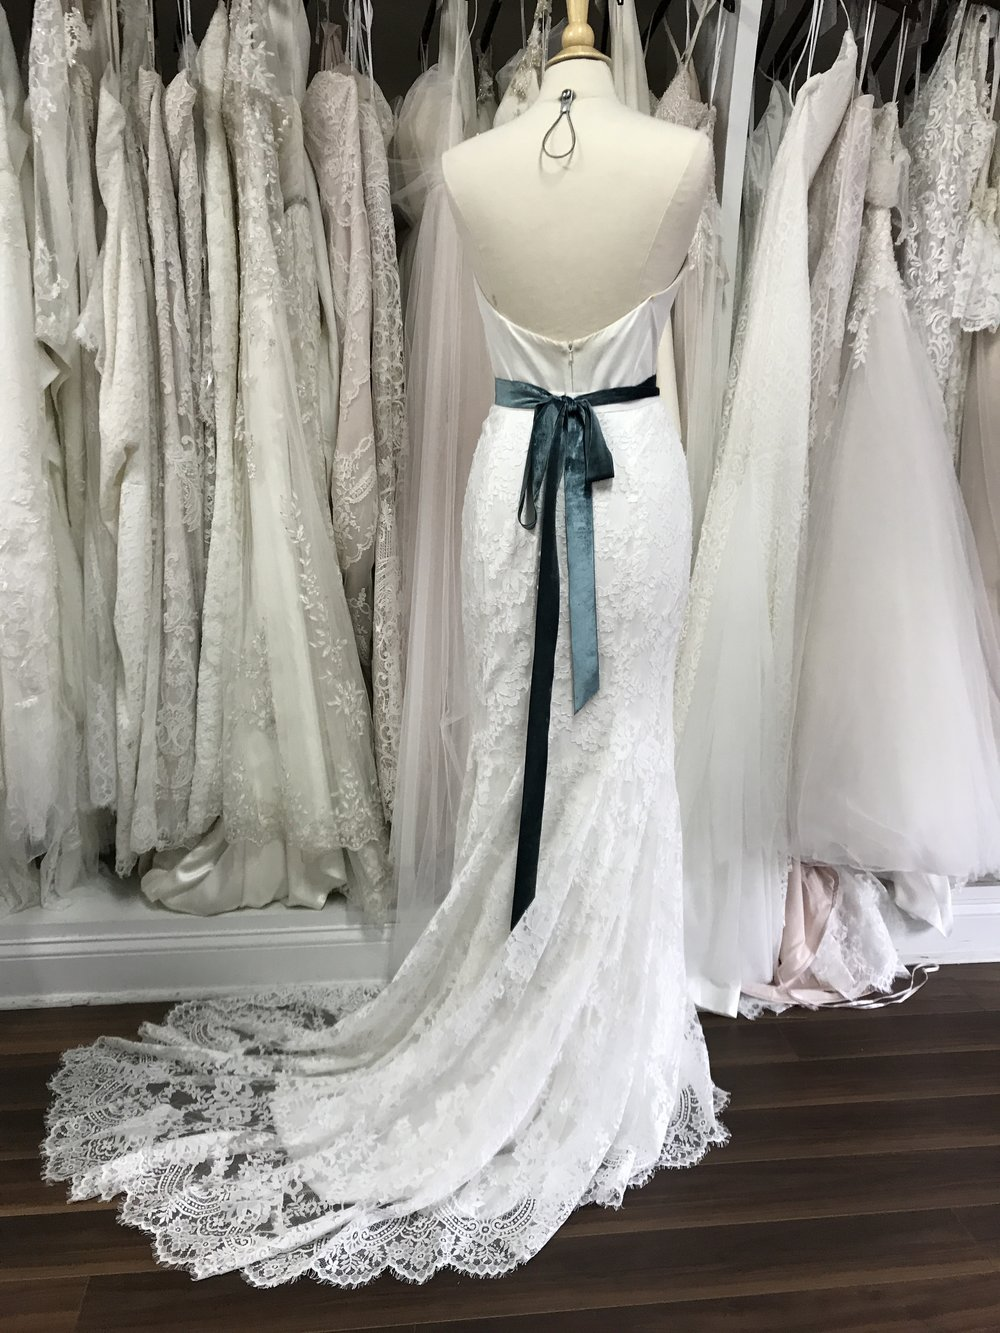 rebecca-schoneveld-ivory-and-beau-bridal-boutique-savannah-wedding-dresses-savannah-bridal-boutique-savannah-weddings-savannah-wedding-planner-savannah-florist-bridal-separates-handmade-wedding-dress-handmade-bride-indie-wedding-designer-jaclyn-jordan.JPG